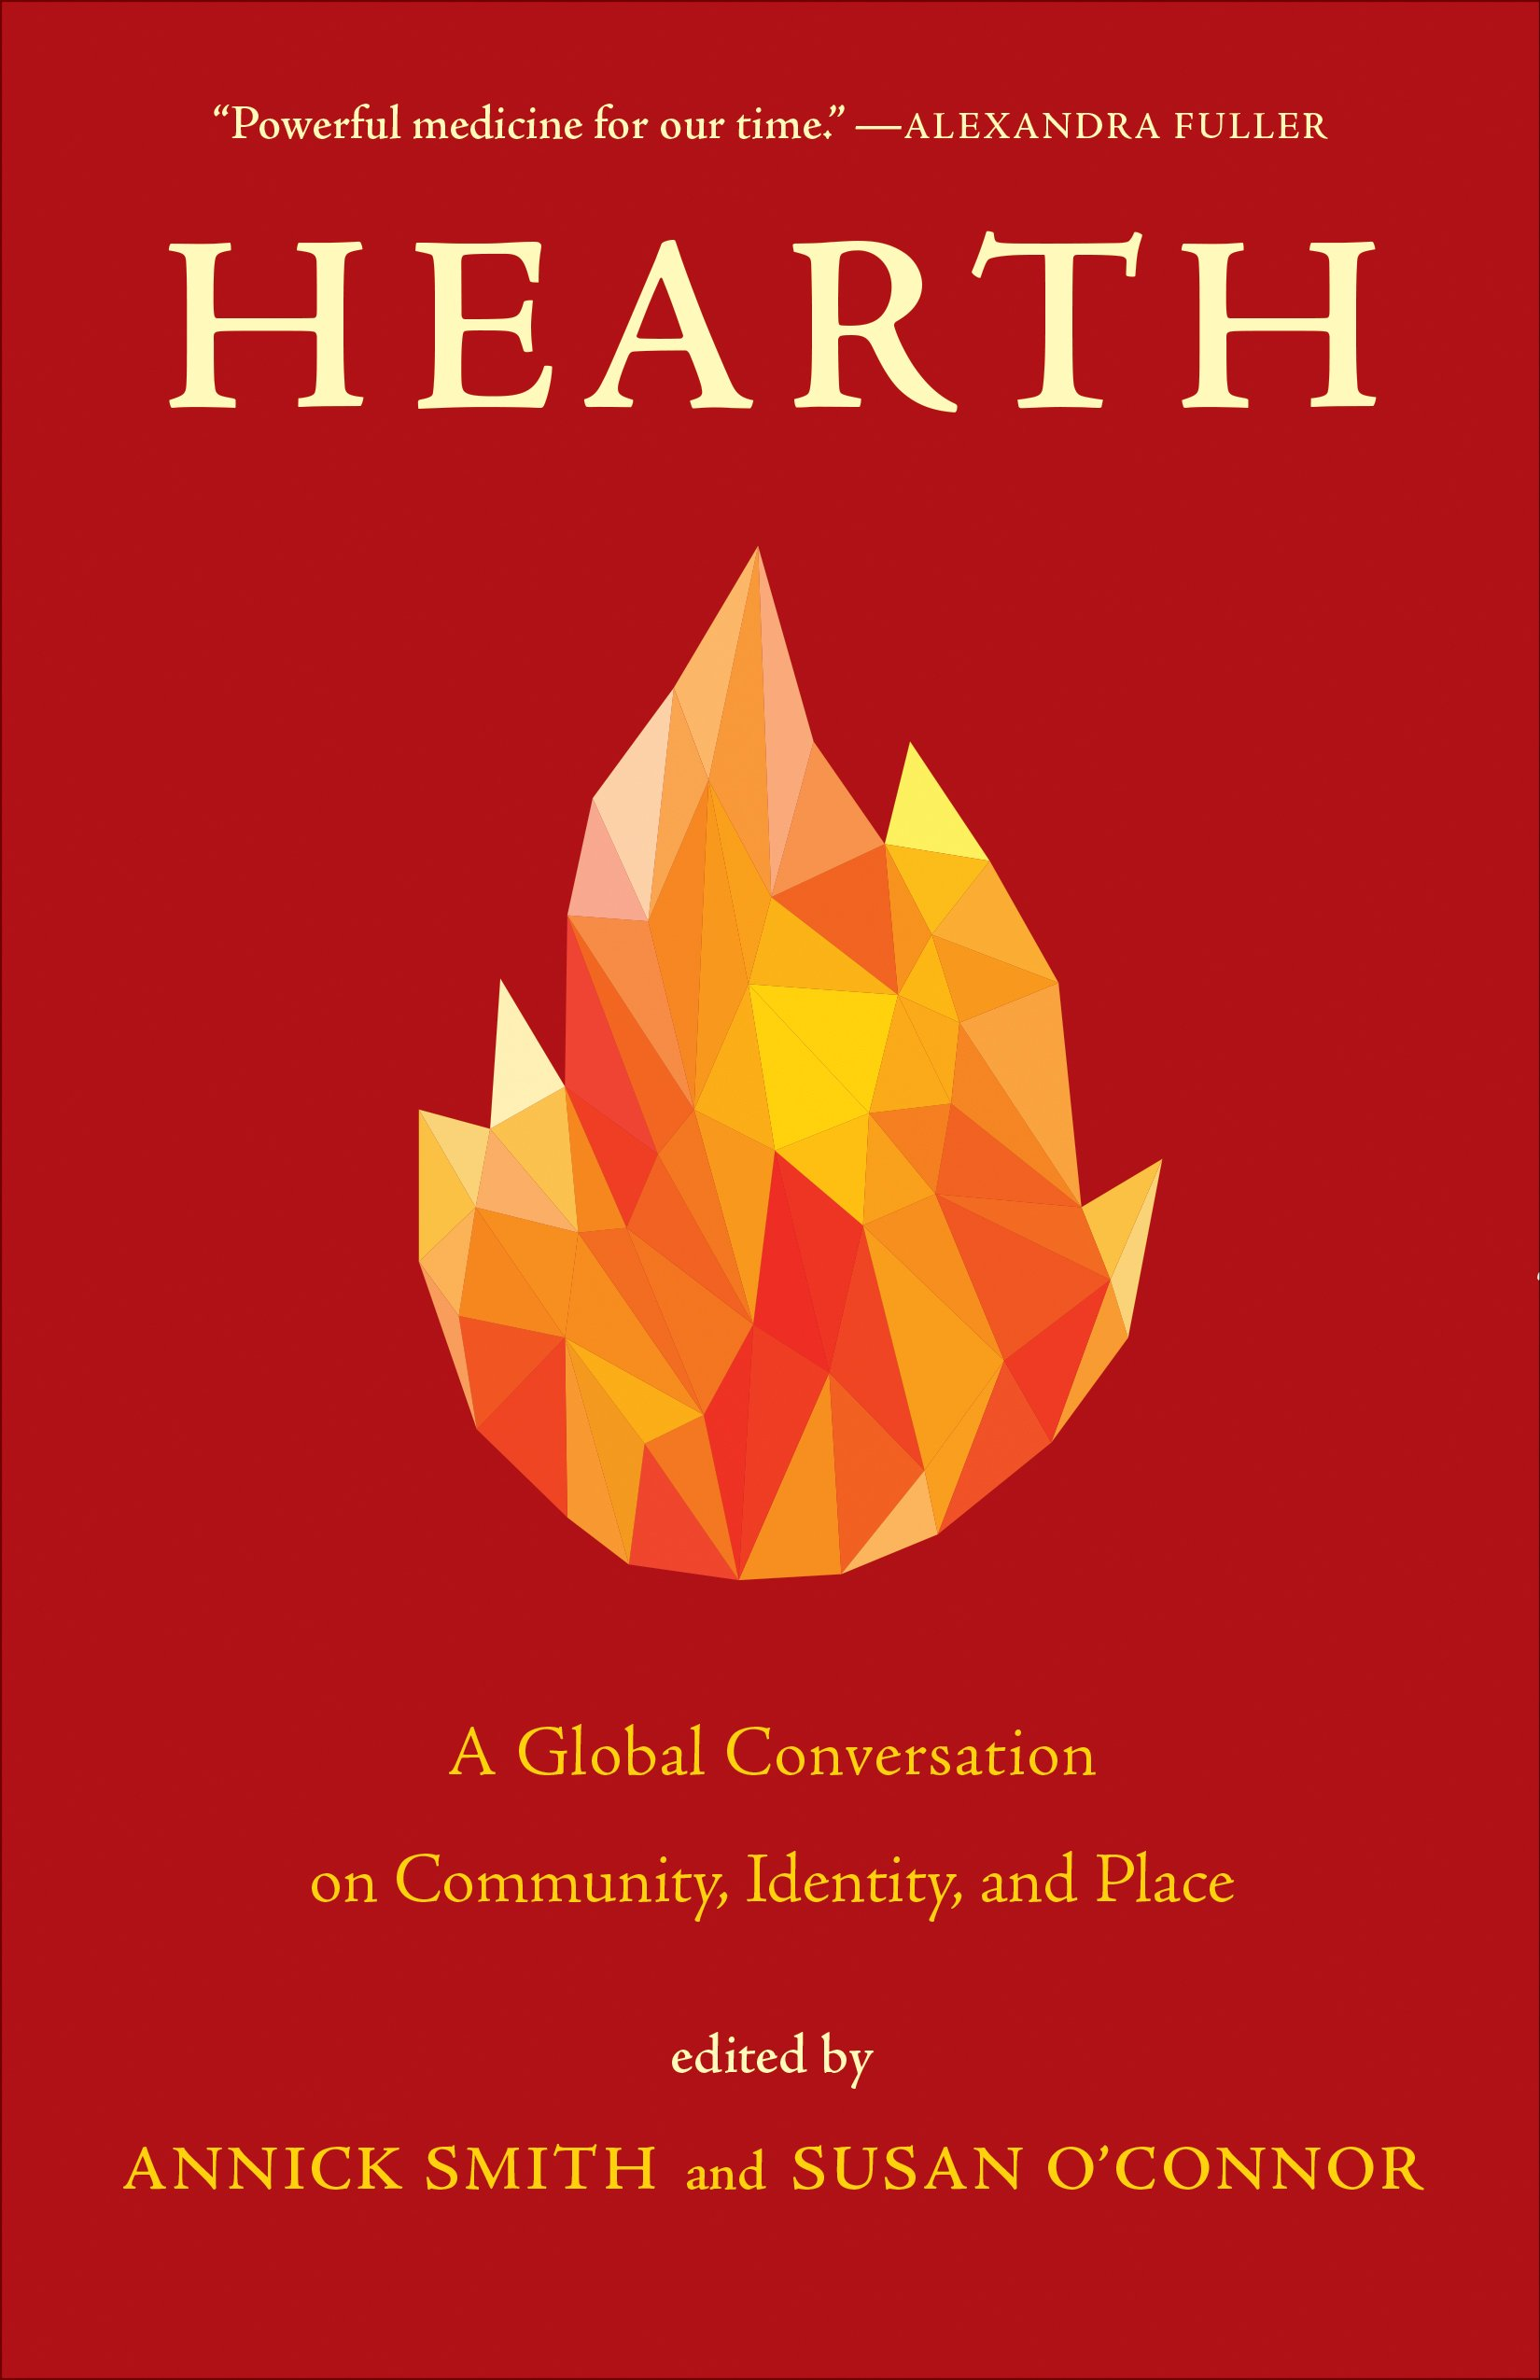 Hearth: A Global Conversation on Identity, Community, and Place: Smith,  Annick, O'Connor, Susan: 9781571313799: Amazon.com: Books